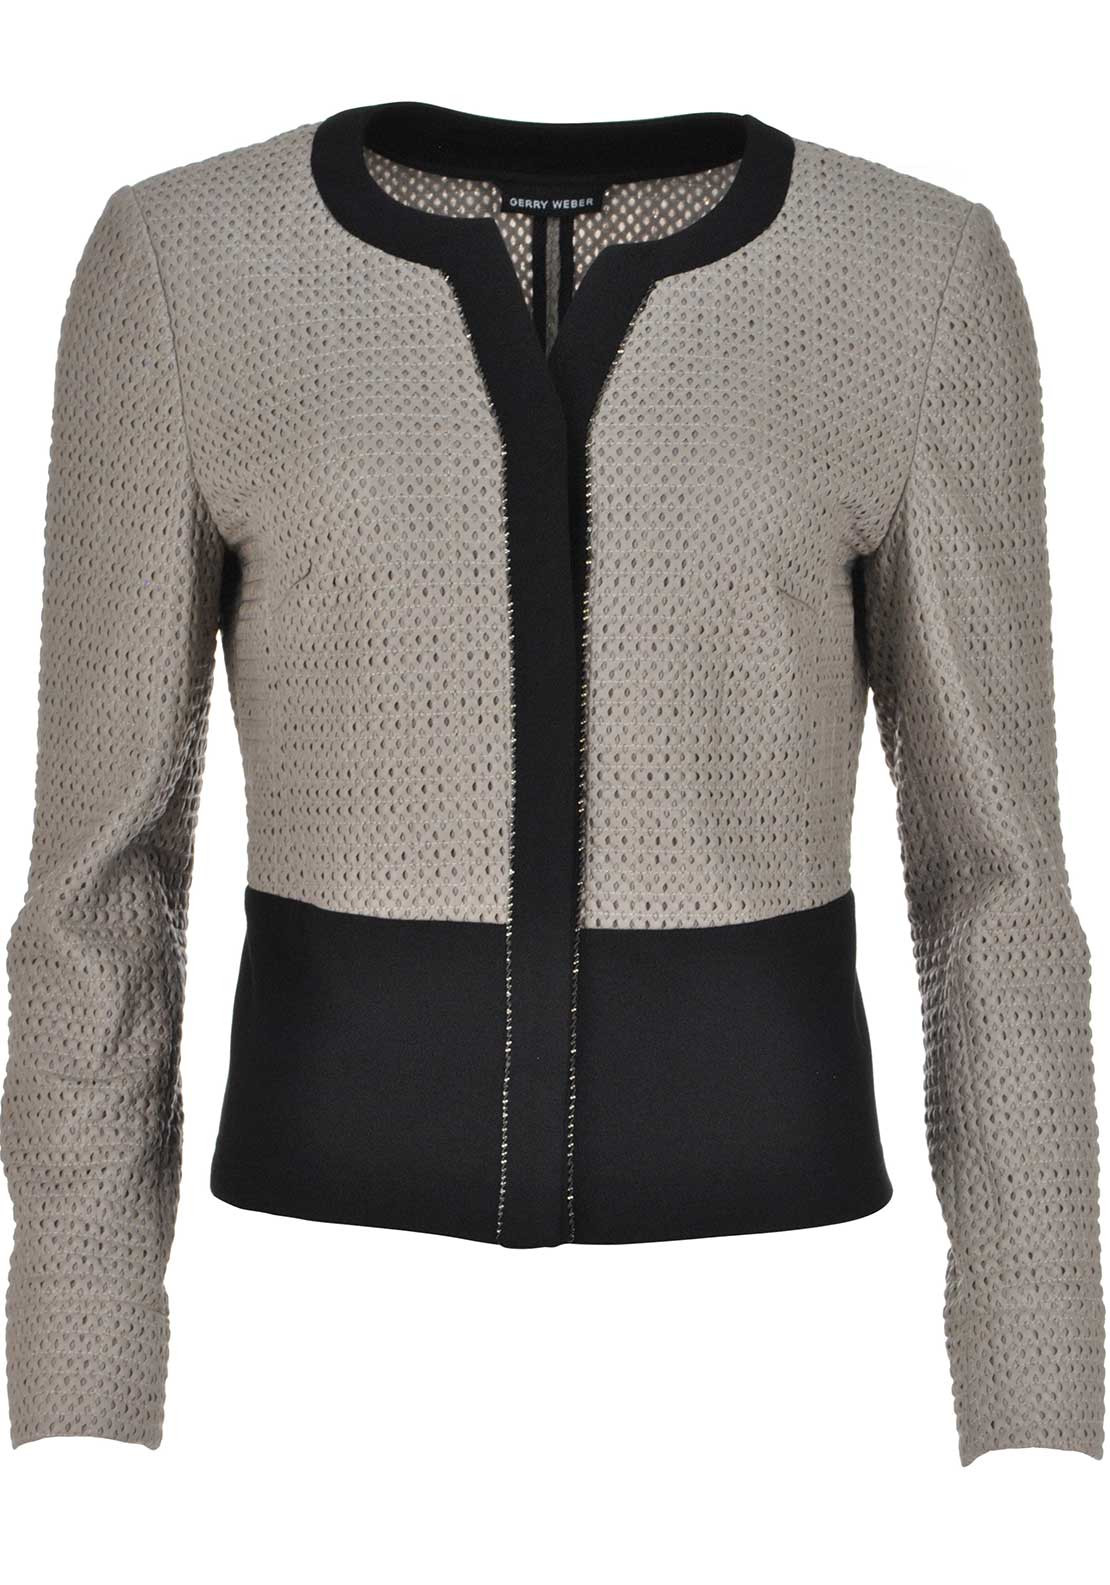 Gerry Weber Laser Cut Out Cropped Leather Look Jacket, Taupe